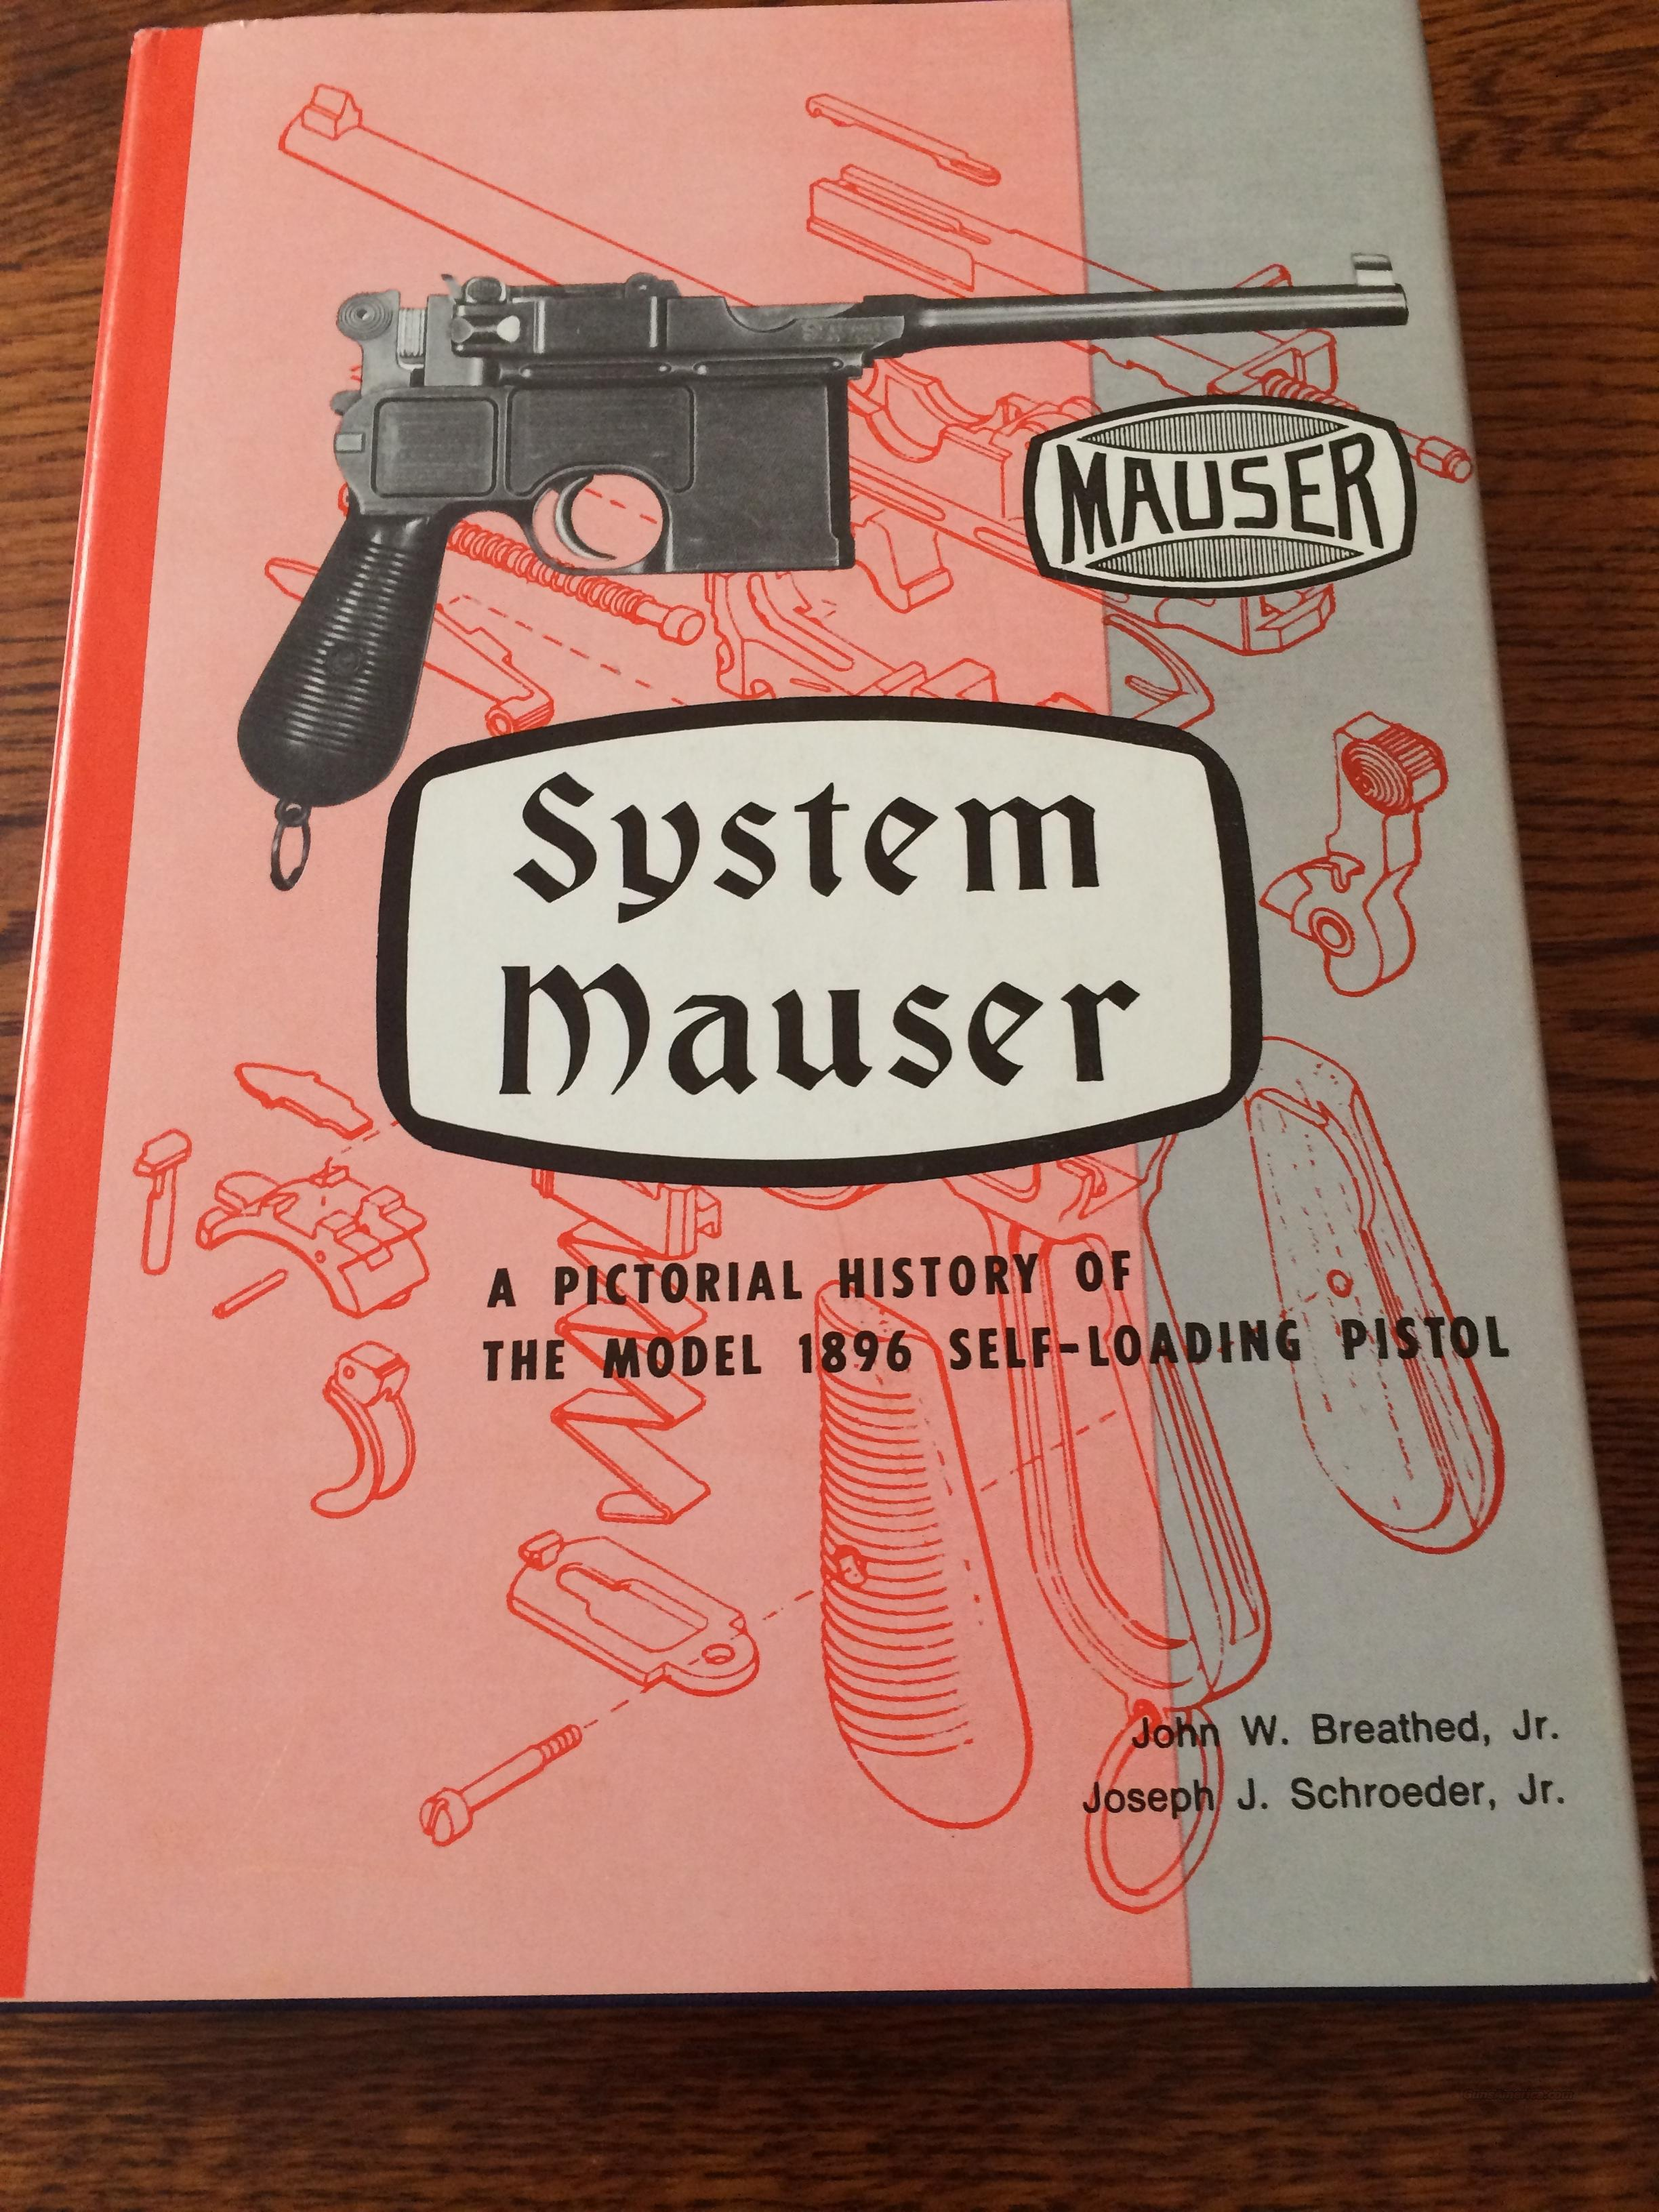 System Mauser: A Pictorial History of the Model, 1896 Self-Loading Pistol [Hardcover]  Non-Guns > Books & Magazines